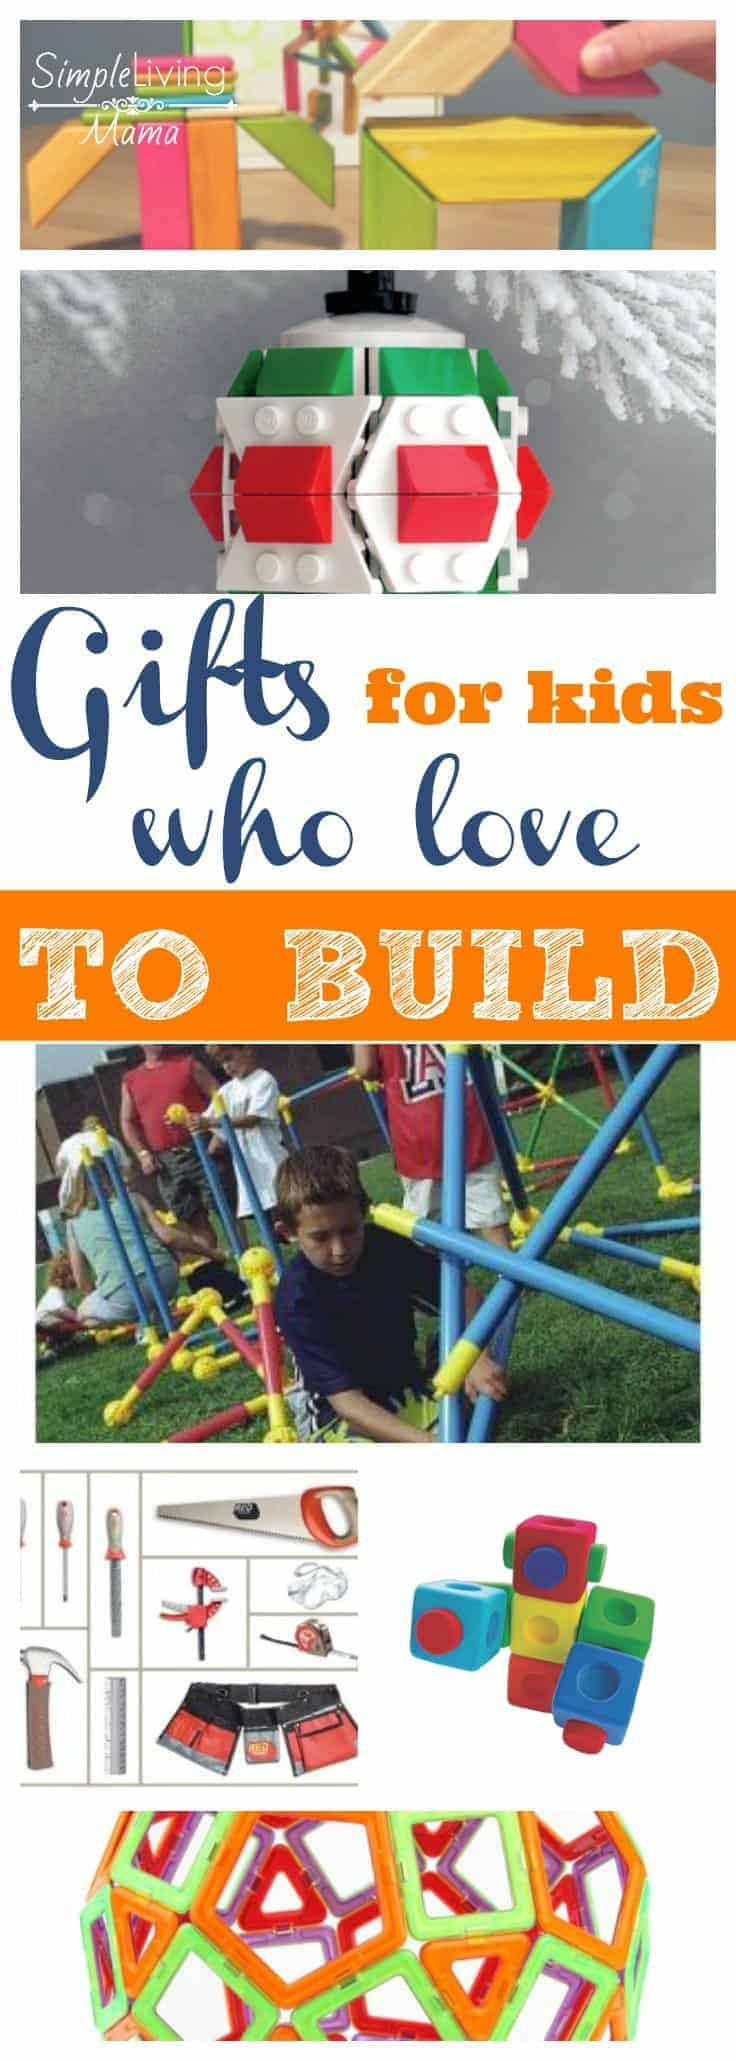 Does your kid love to take things apart just to put them back together? Does he love to build awesome creations? Find the perfect gifts for kids who love to build here!